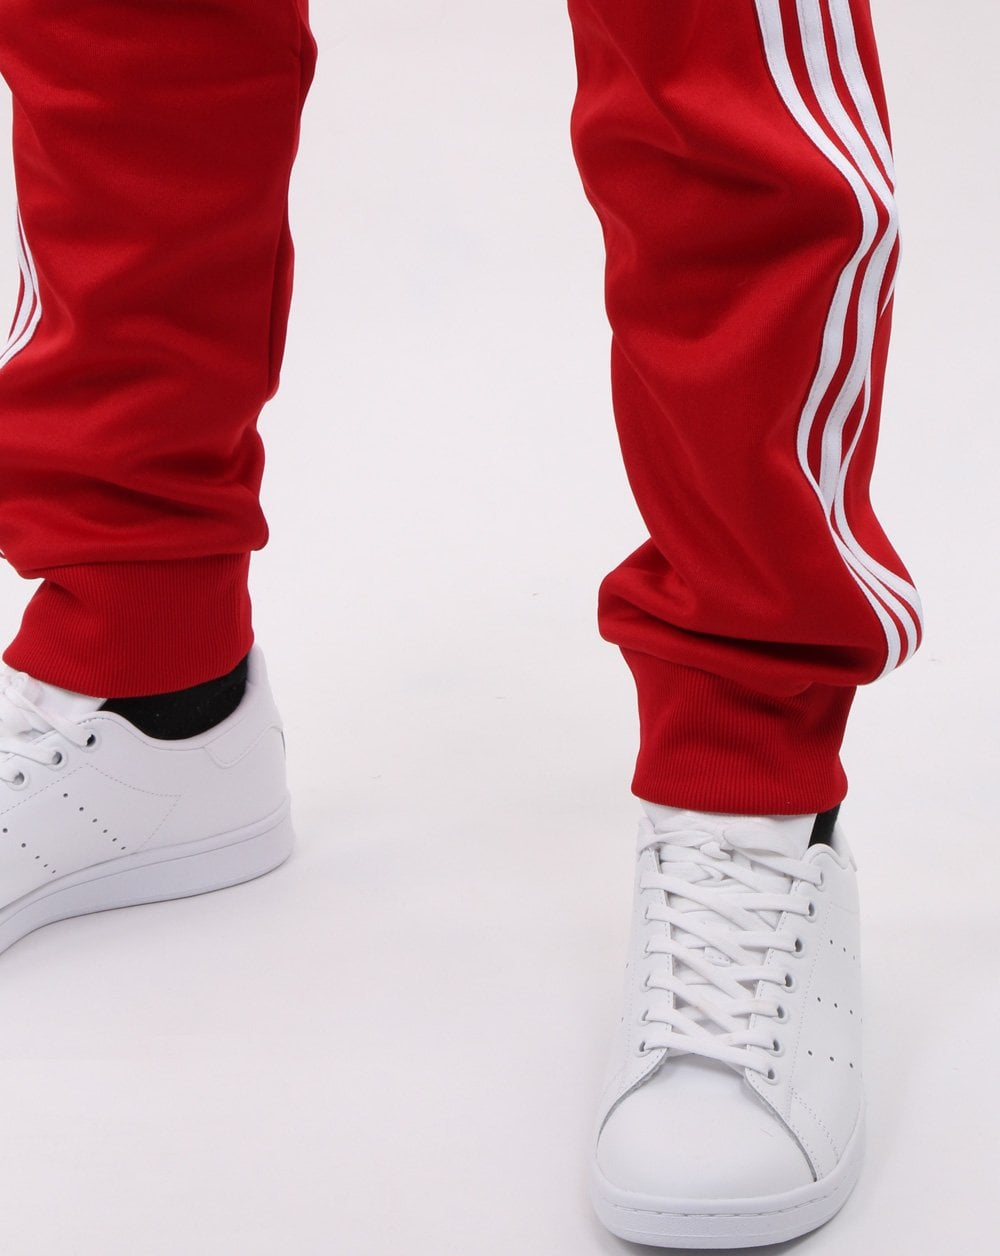 Adidas Originals Superstar Track Pants Power Red Mens Tracksuit